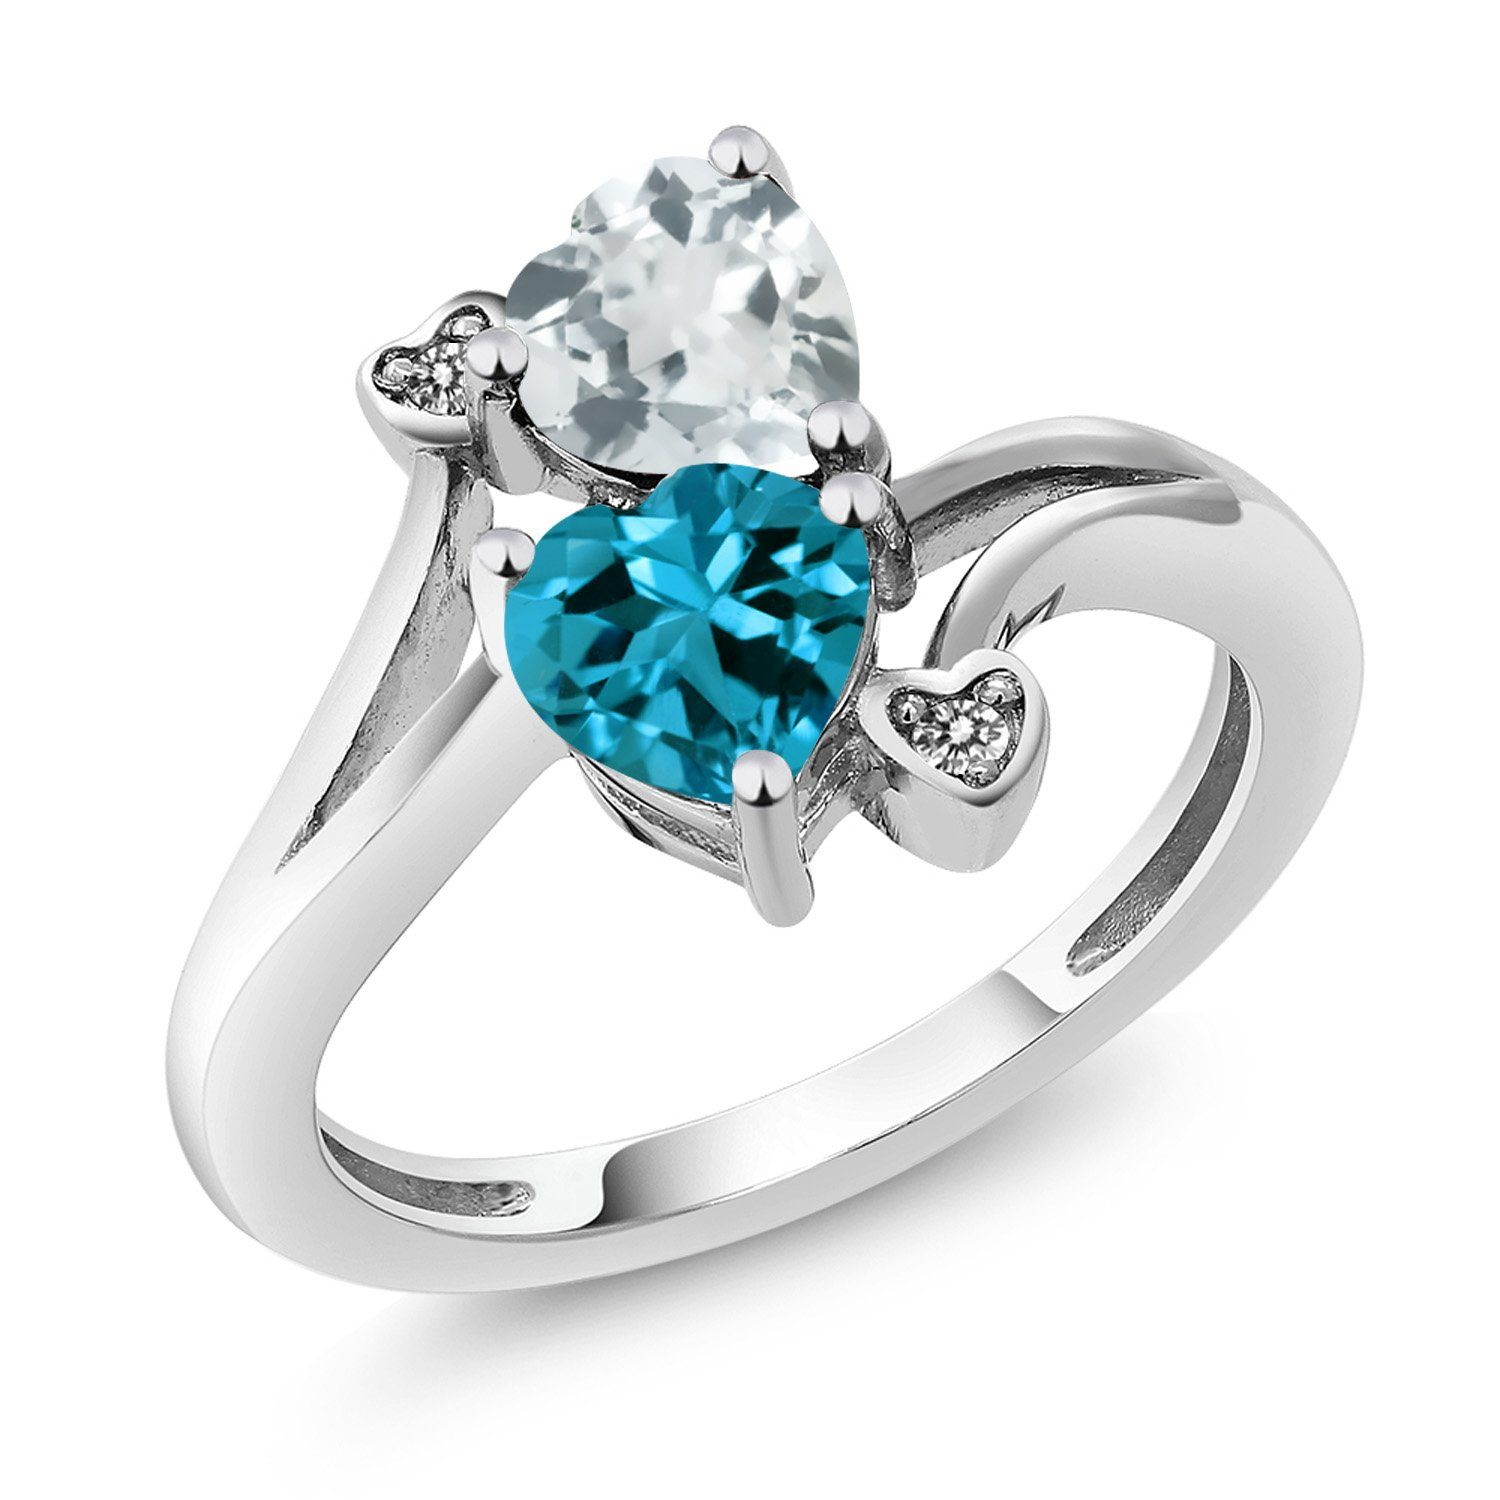 3mm Solid 925 Sterling Silver Light Swiss Blue Simulated Topaz /& Diamond Ring